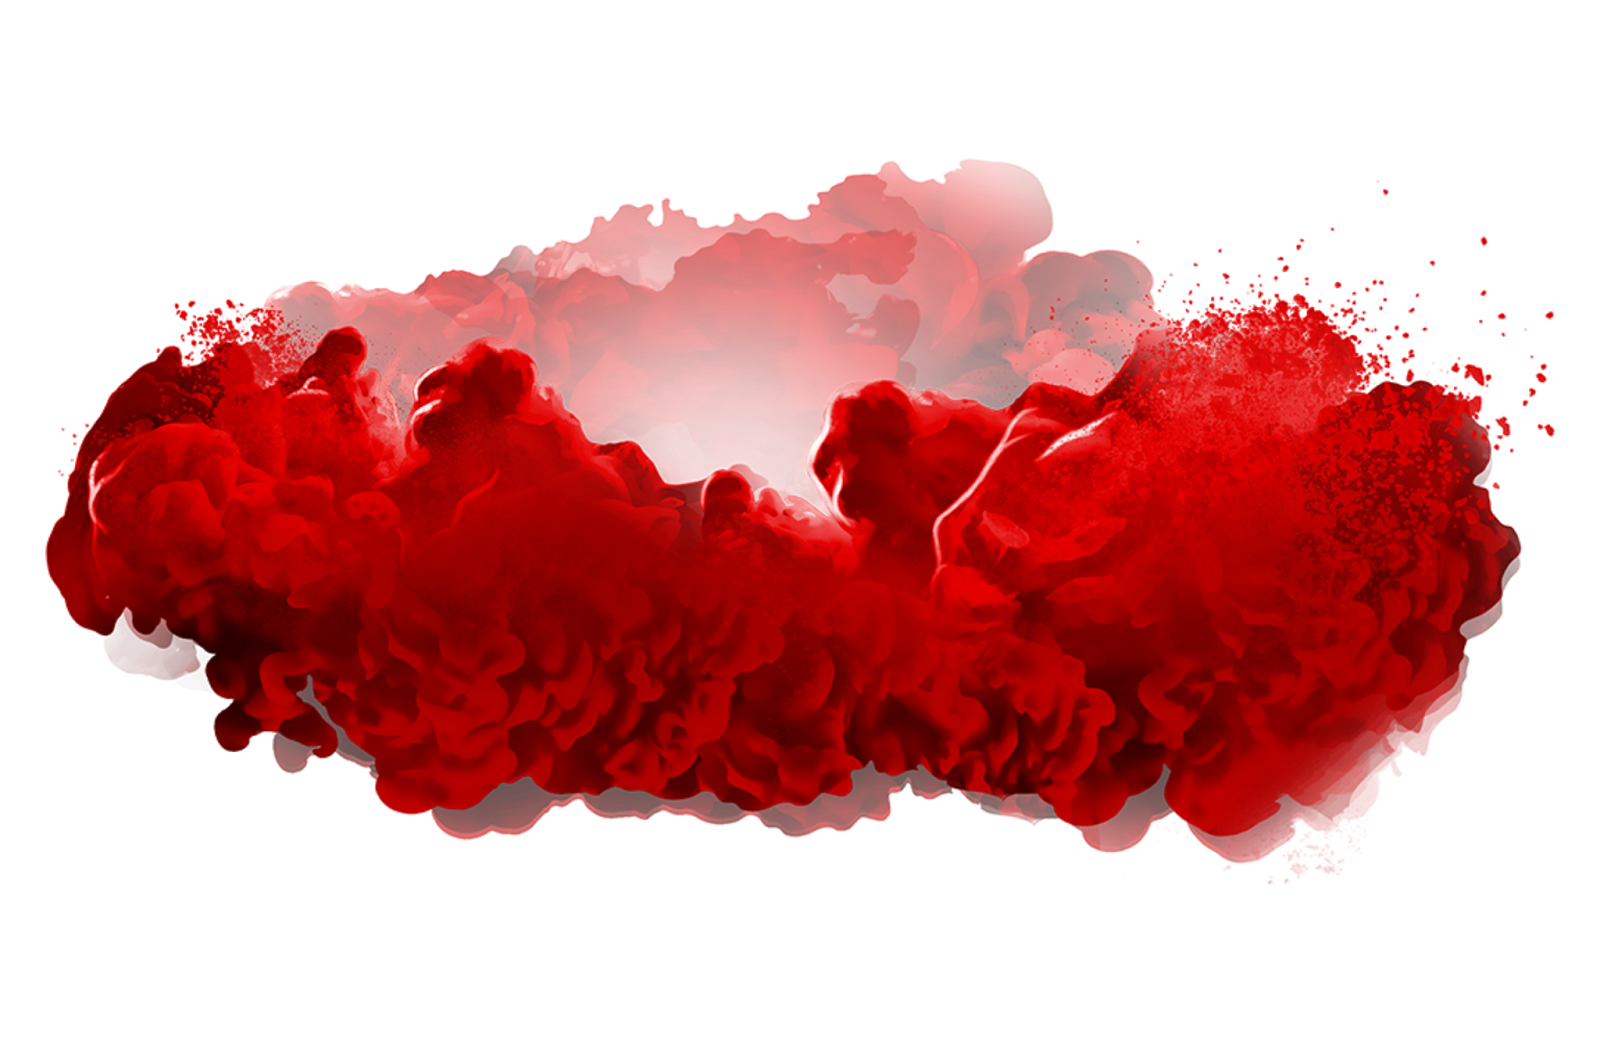 Red smoke effect png. Blood background image arts